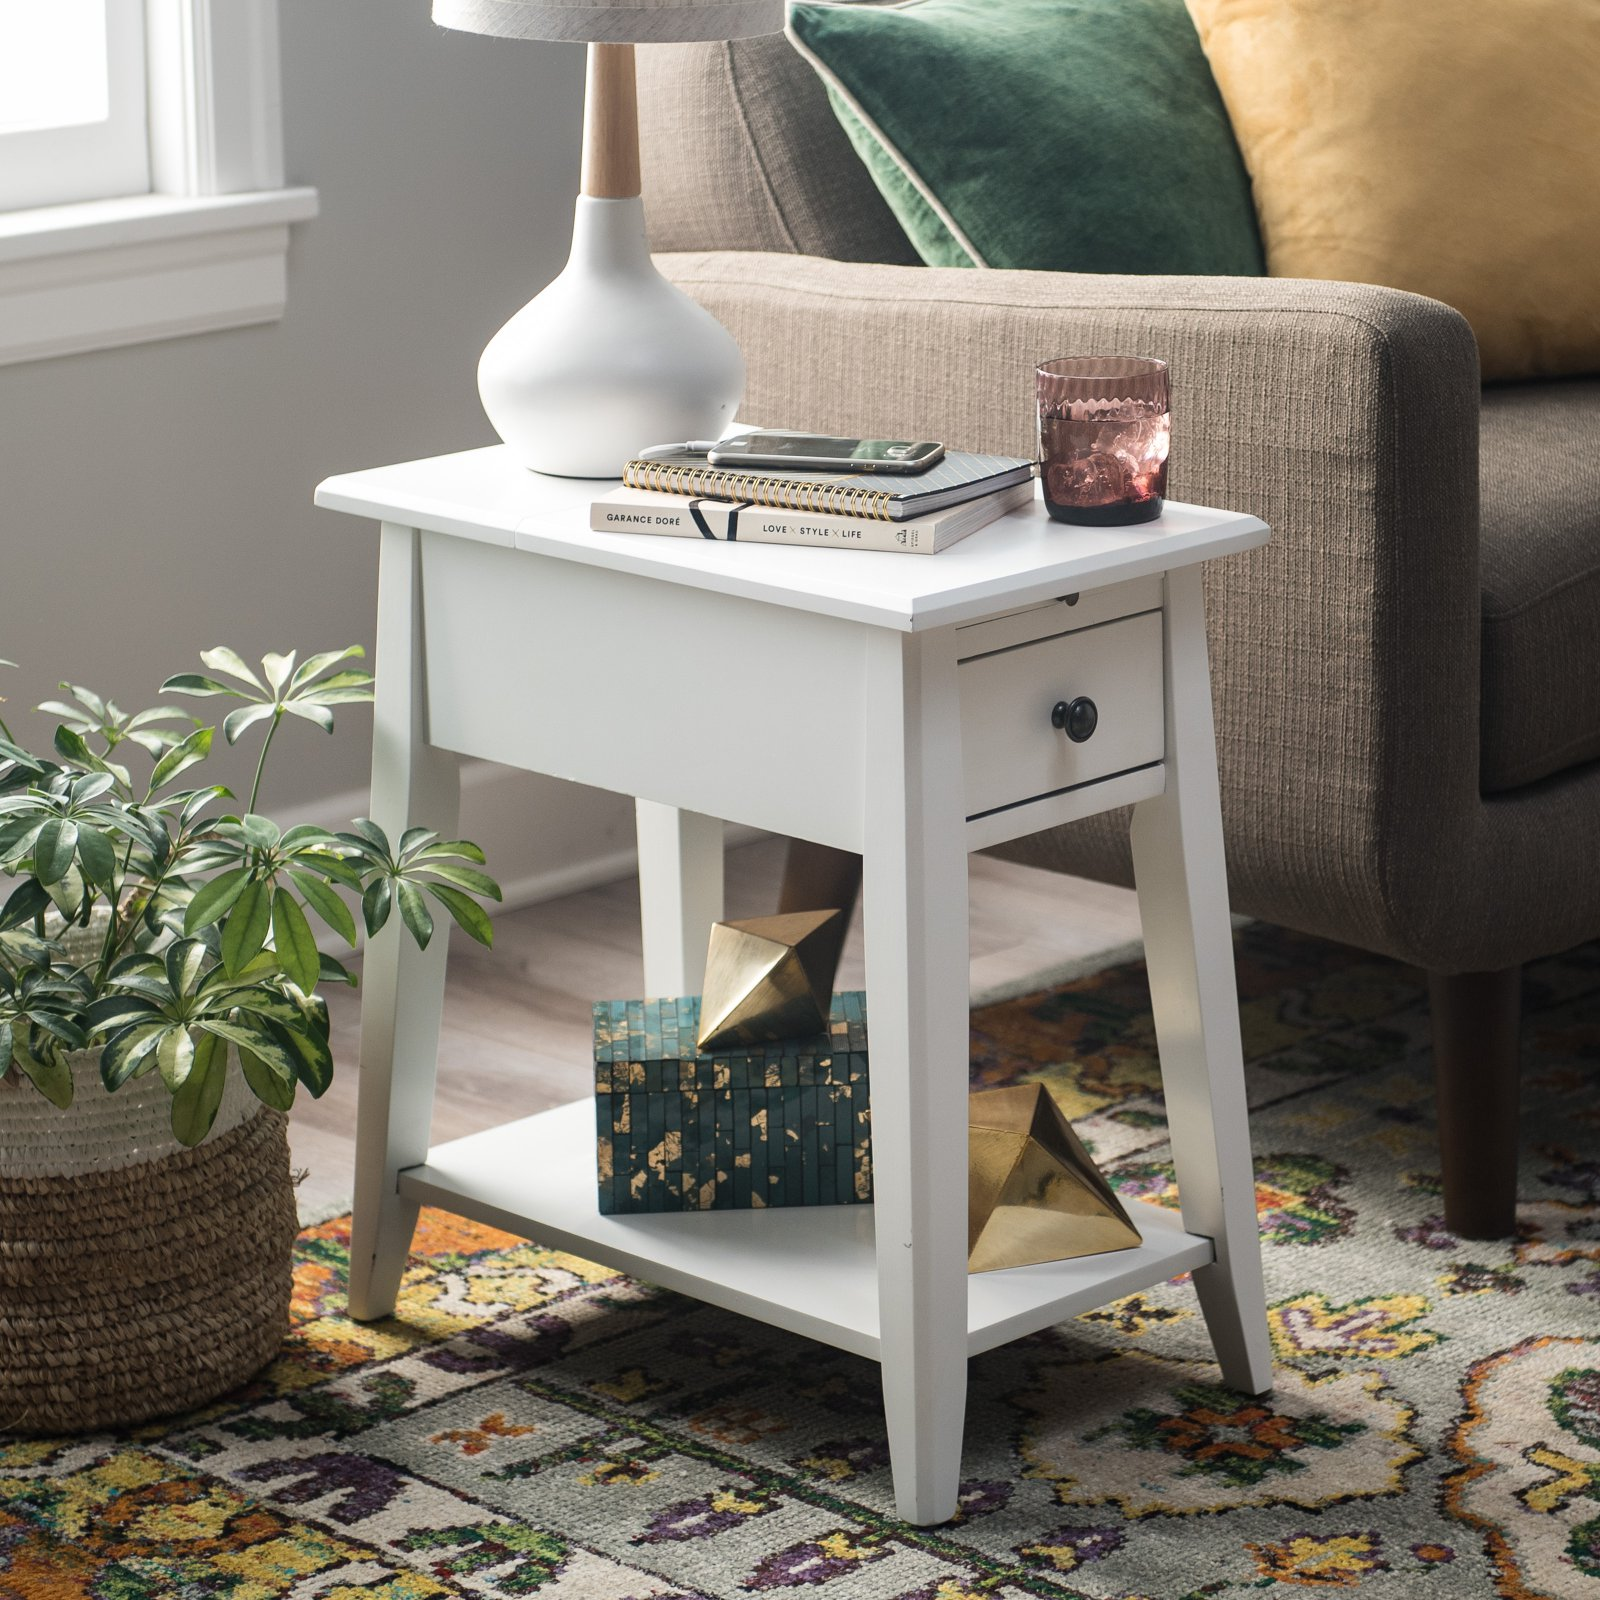 Finley Home Davis Chairside Table with Power Outlet - White